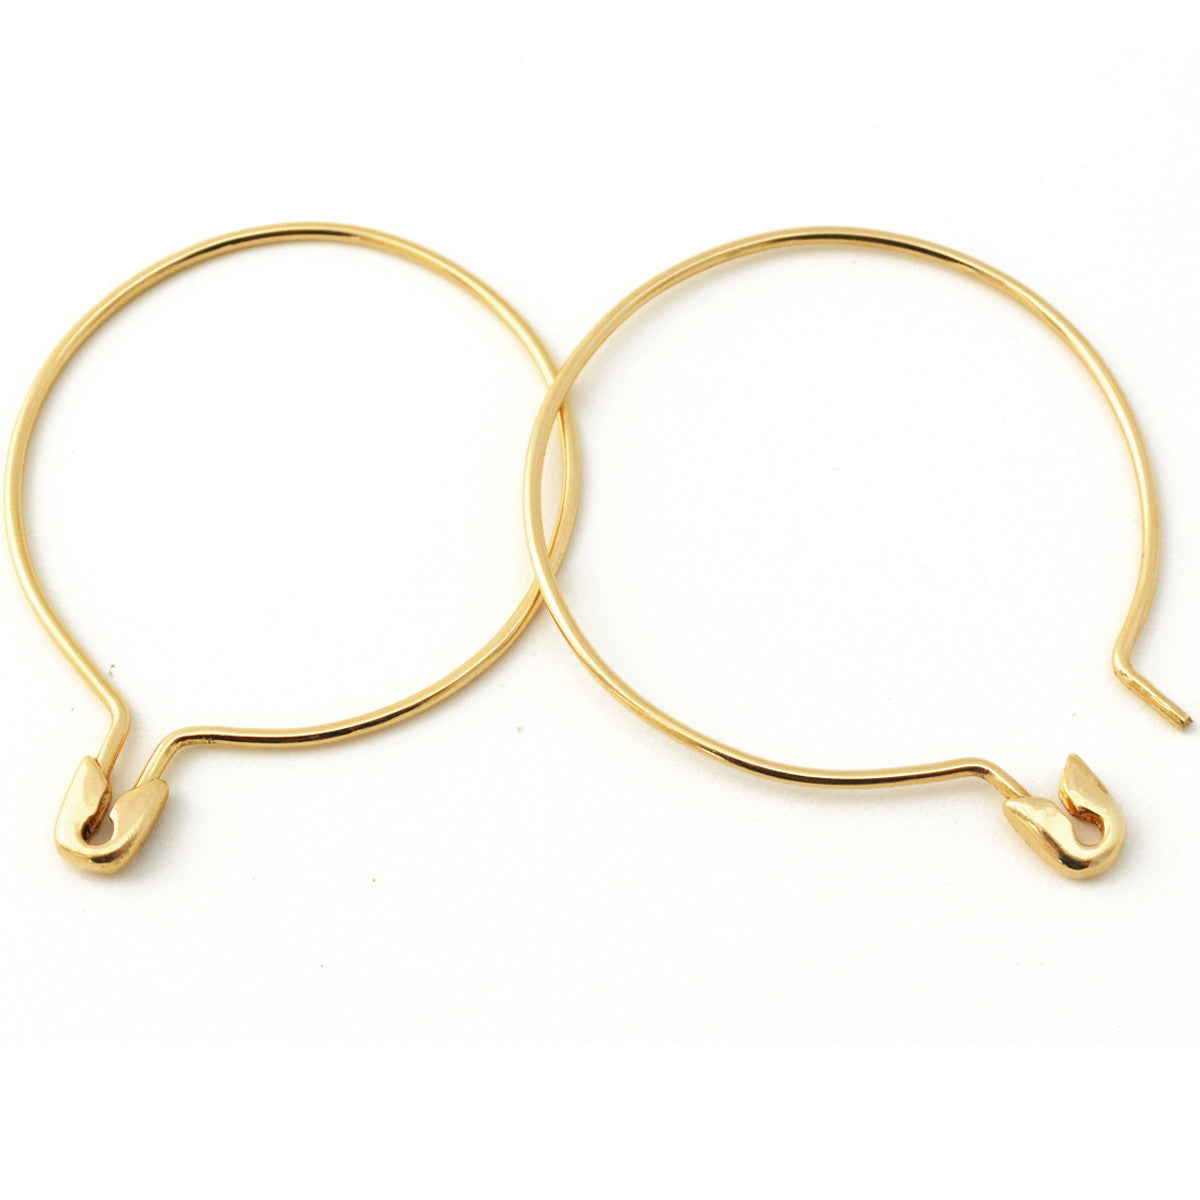 14K GOLD SAFETY PIN HOOP EARRINGS LARGE